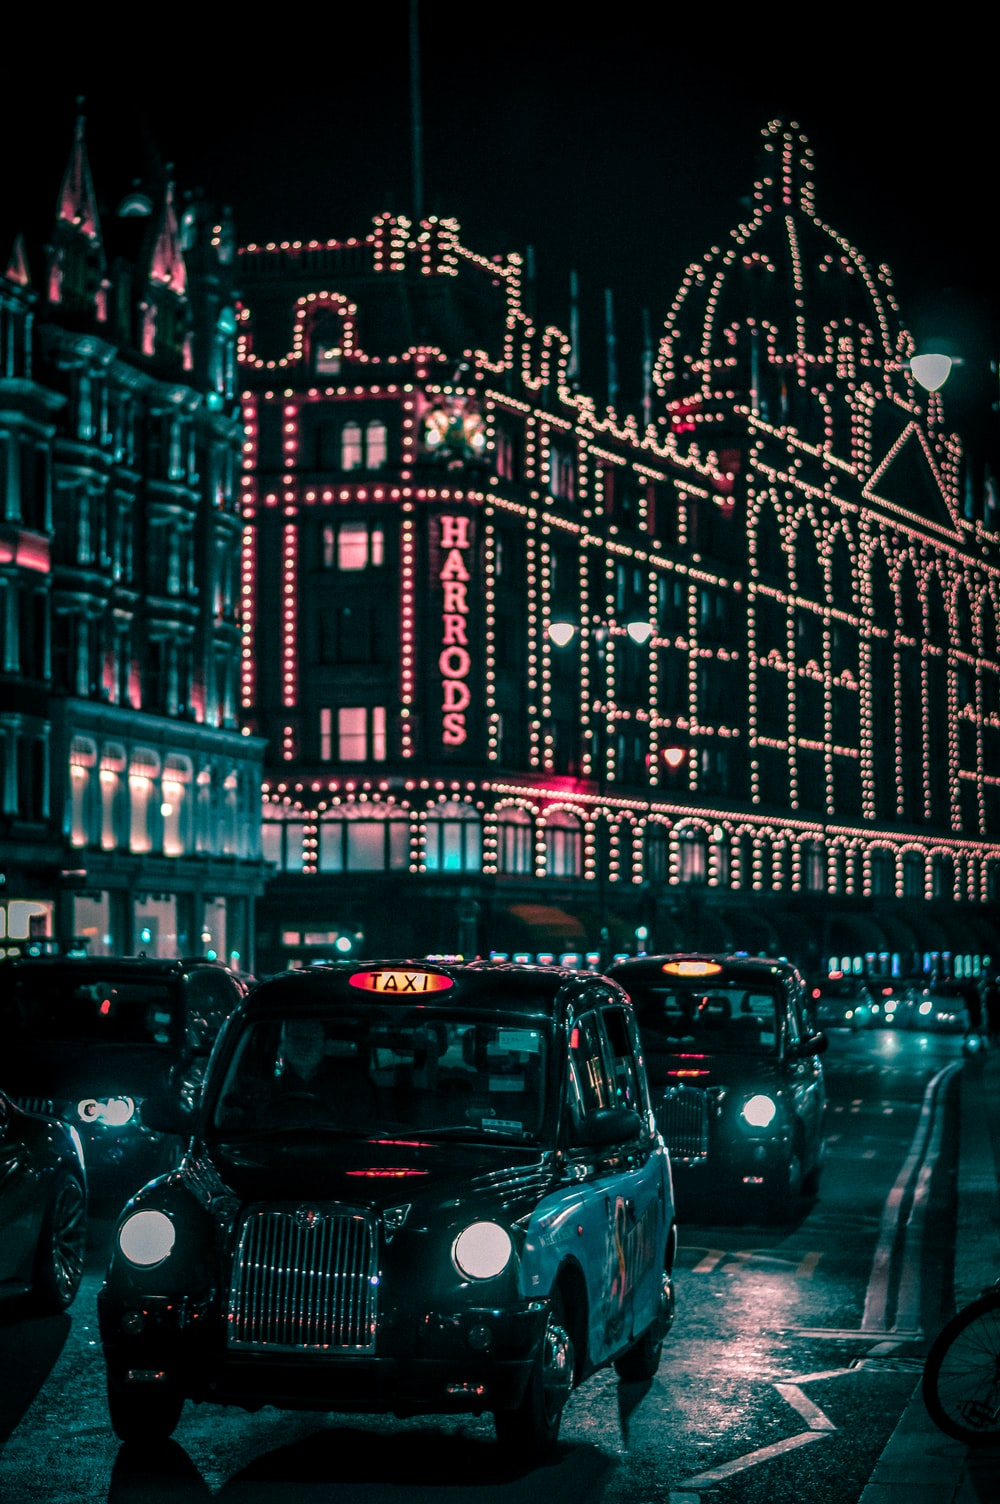 Black Taxi In The Street Ping Trough Harrods Mall During Nighttime